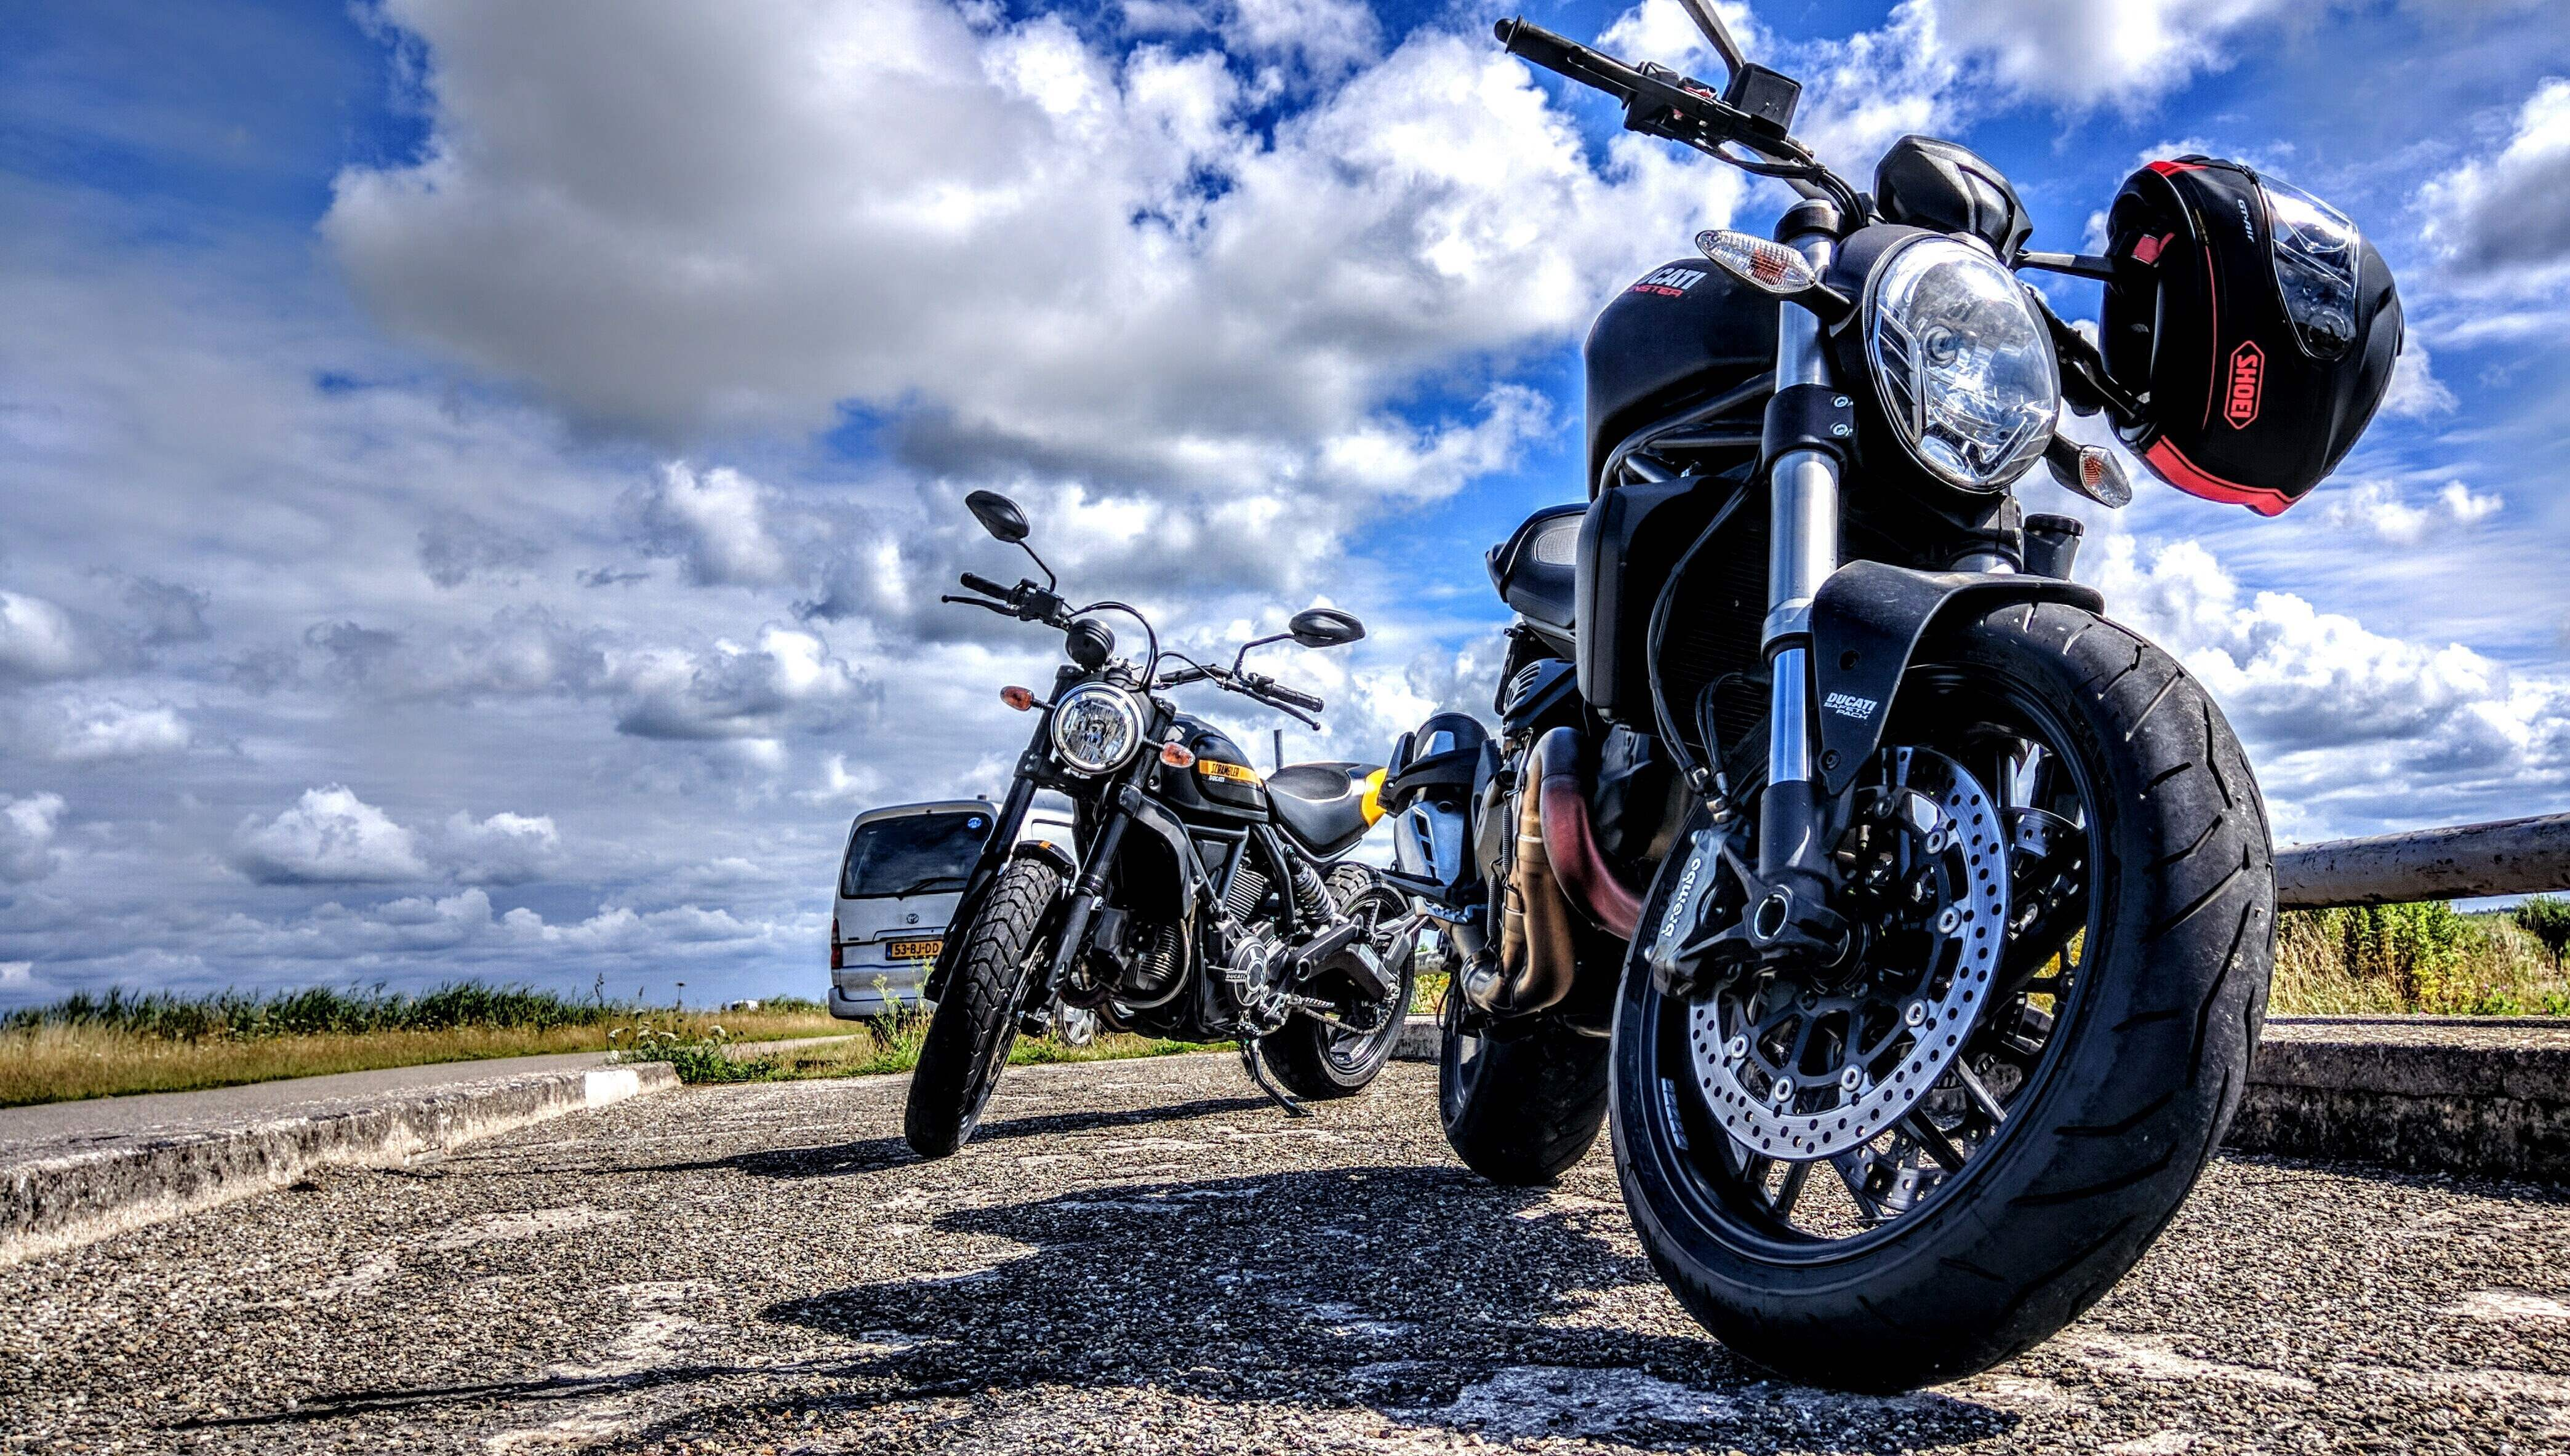 Motorcyclists are one of the most vulnerable groups who use the roads, and are at risk for sustaining serious injuries if an accident occurs.